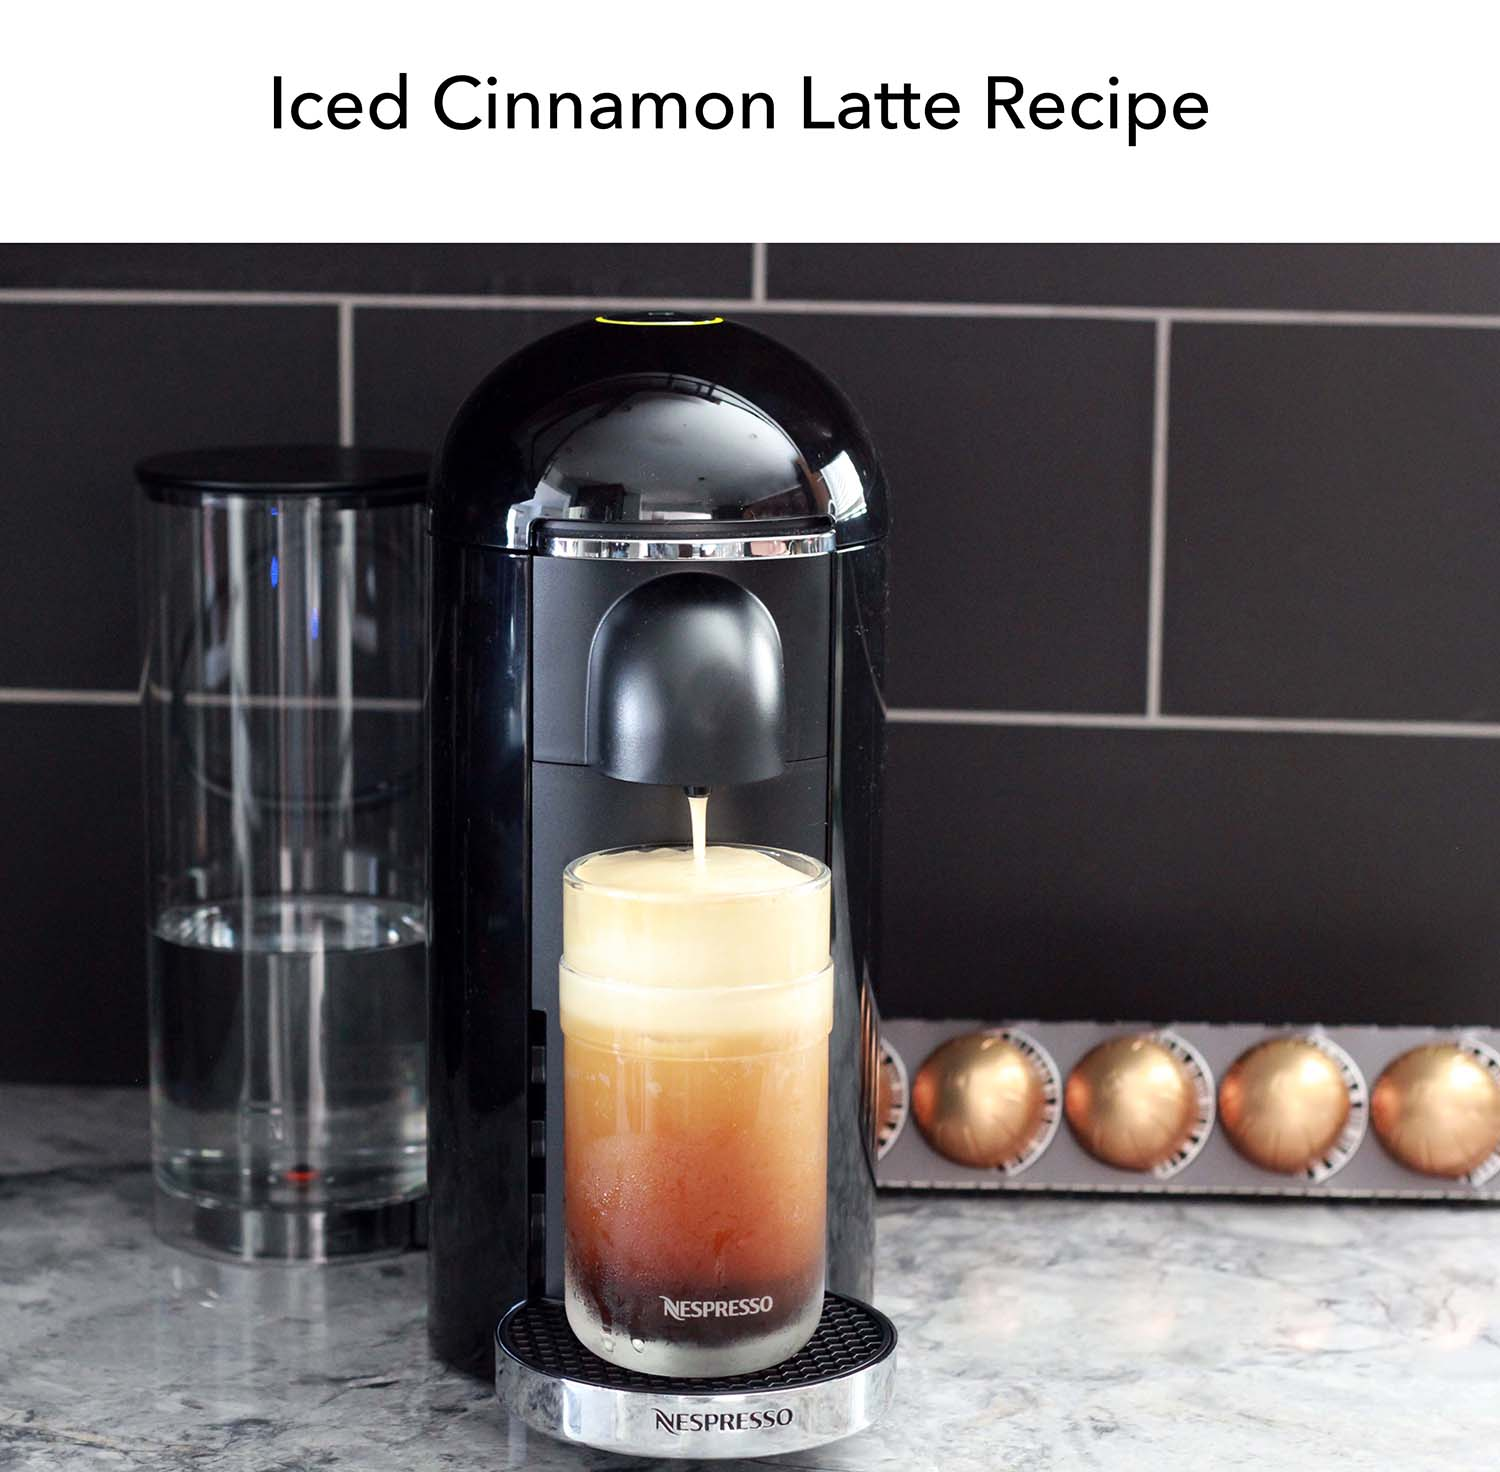 Elevating My Morning with Nespresso, Nespresso, Coffe, latte, espresso, morning, melrodstyle, ice cinnamon latte, lattes, recipe, iced cinnamon latte recipe, nespresso recipe, nespresso usa, la blogger, trending, lifestyle